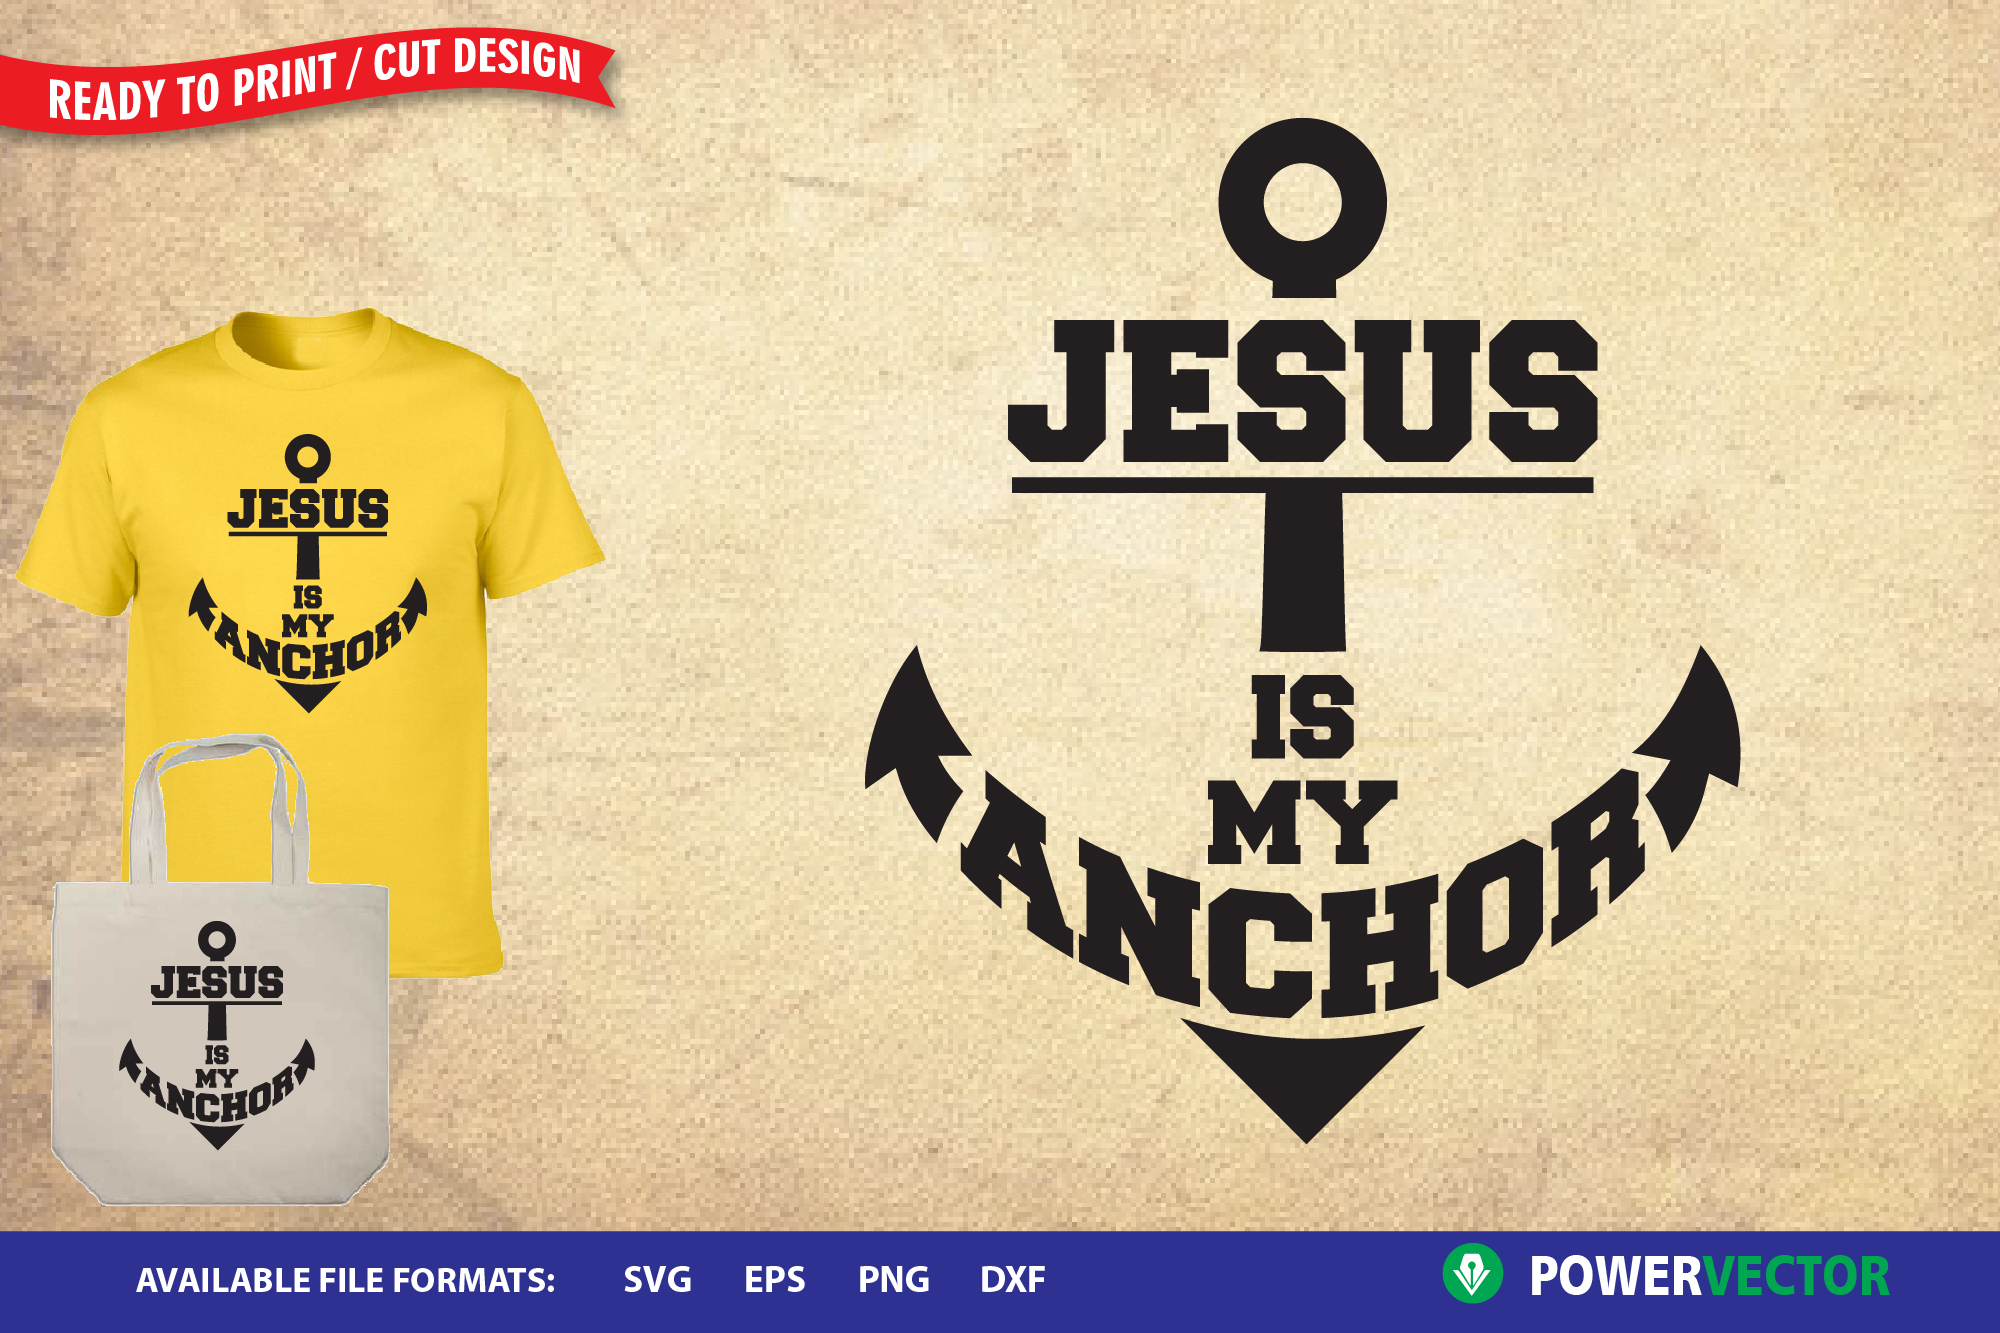 Download Free Jesus Is My Anchor Graphic By Powervector Creative Fabrica for Cricut Explore, Silhouette and other cutting machines.